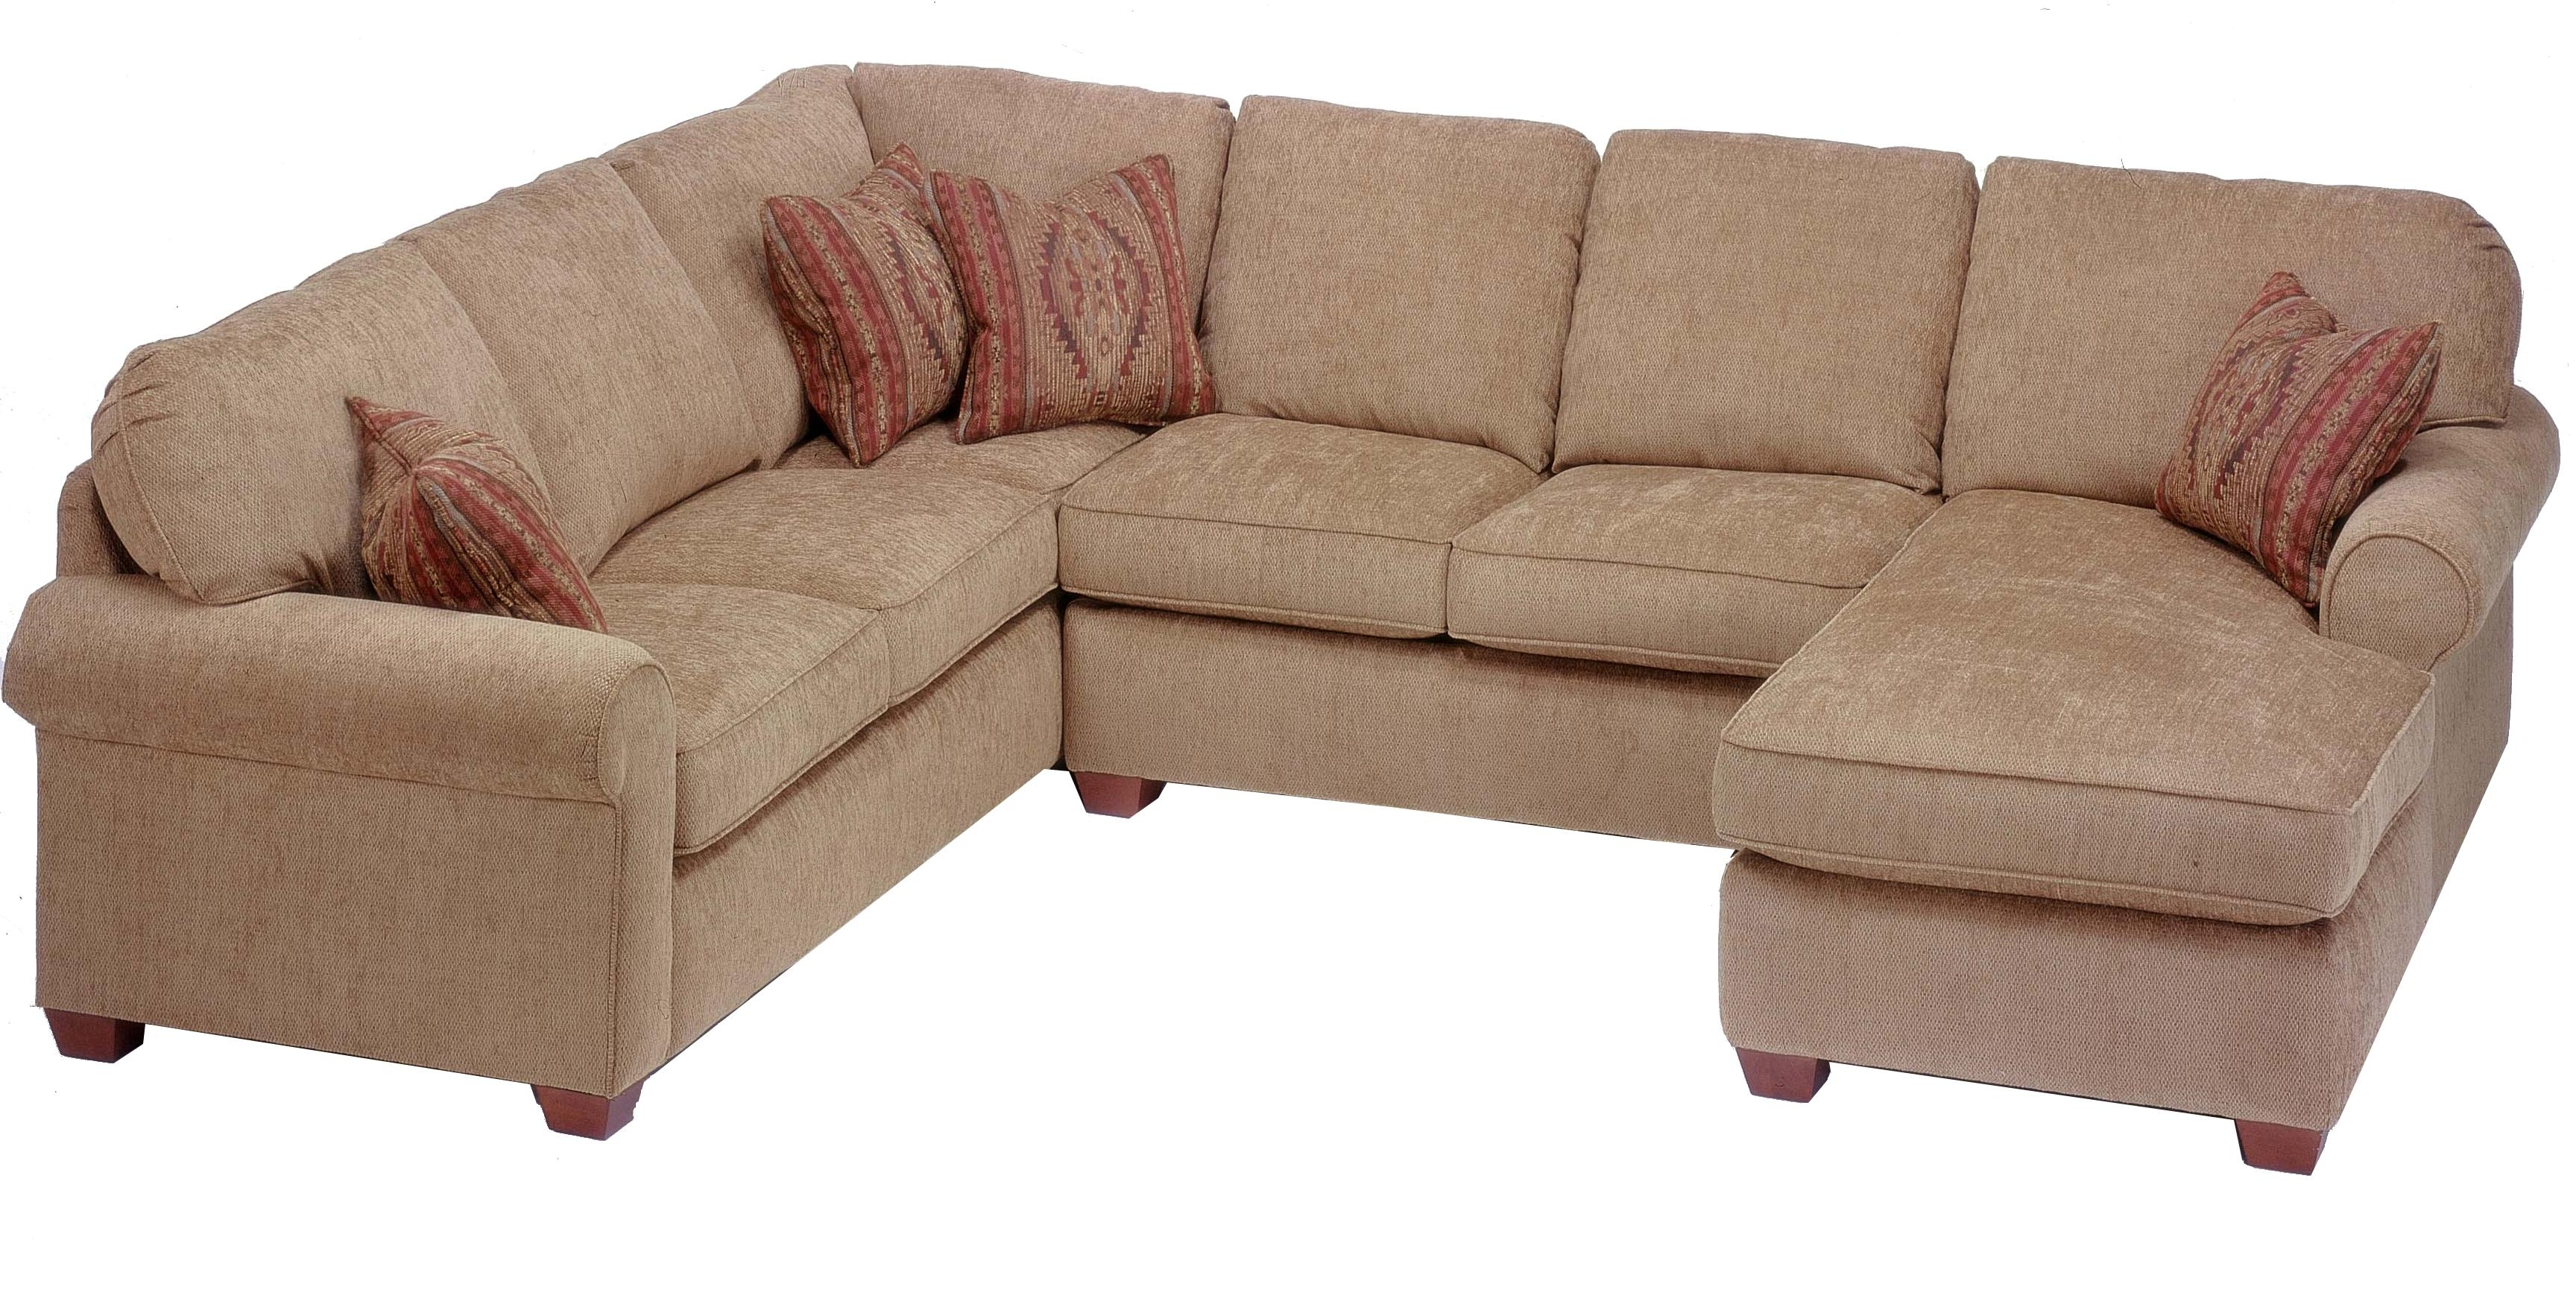 Current Flexsteel Thornton 3 Piece Sectional With Chaise – Ahfa – Sofa For Sectional Sofas At Buffalo Ny (View 1 of 15)